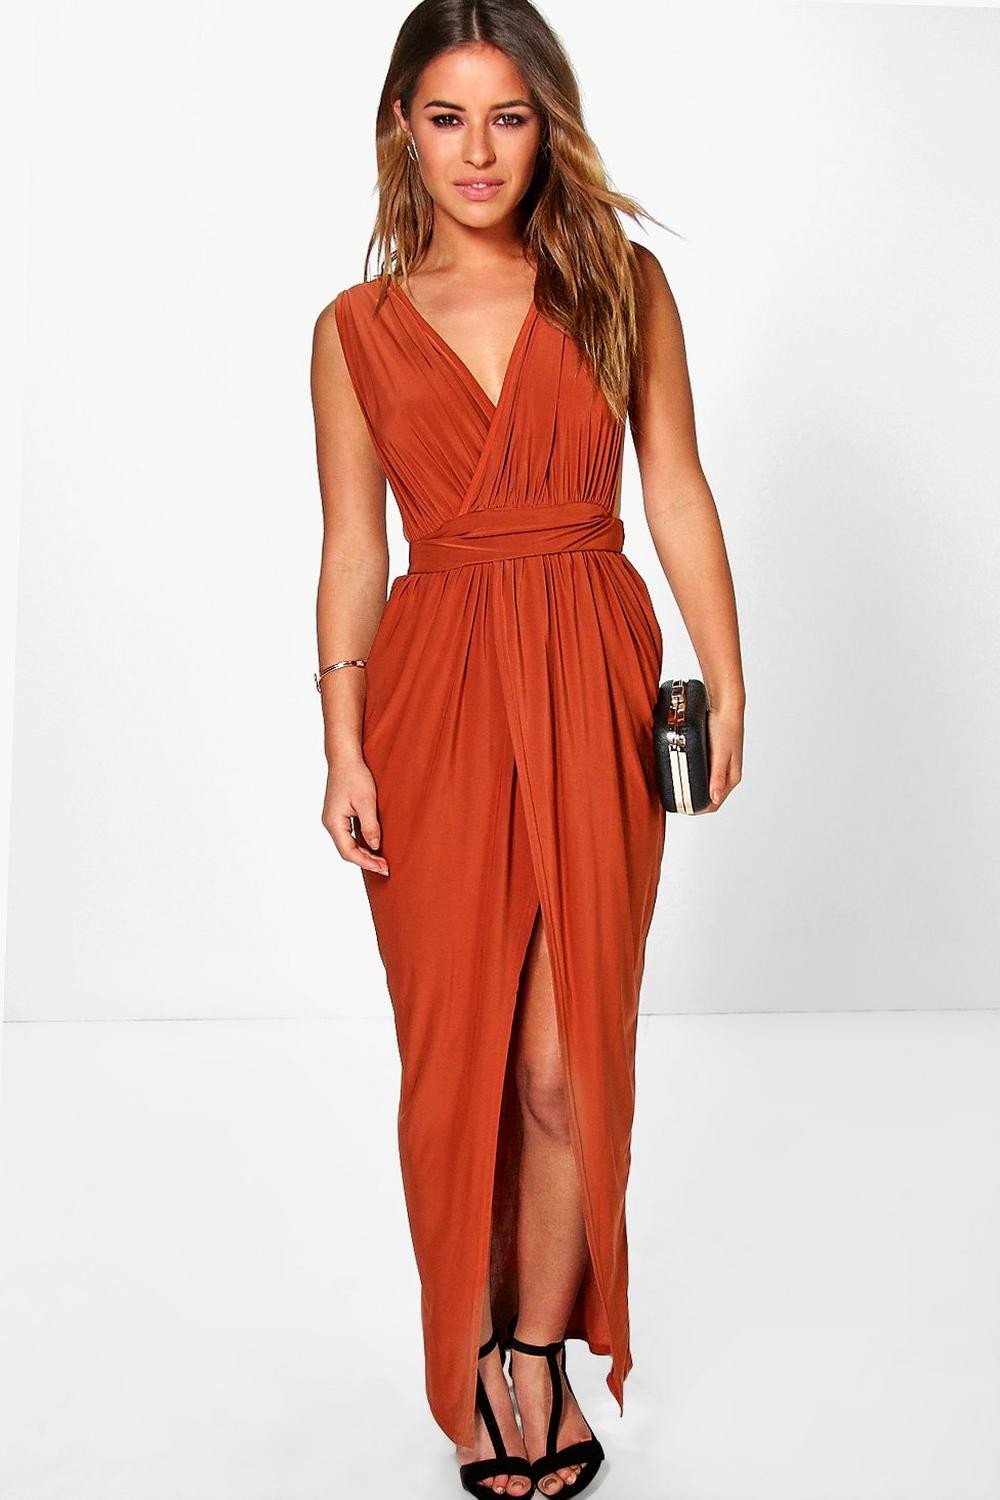 Petite Maxi Dress. Keep it casual-cool in a petite maxi dress. Whether you're running errands around town or looking to amp up your warm weather wardrobe, a chic maxi is always a go-to in your closet.